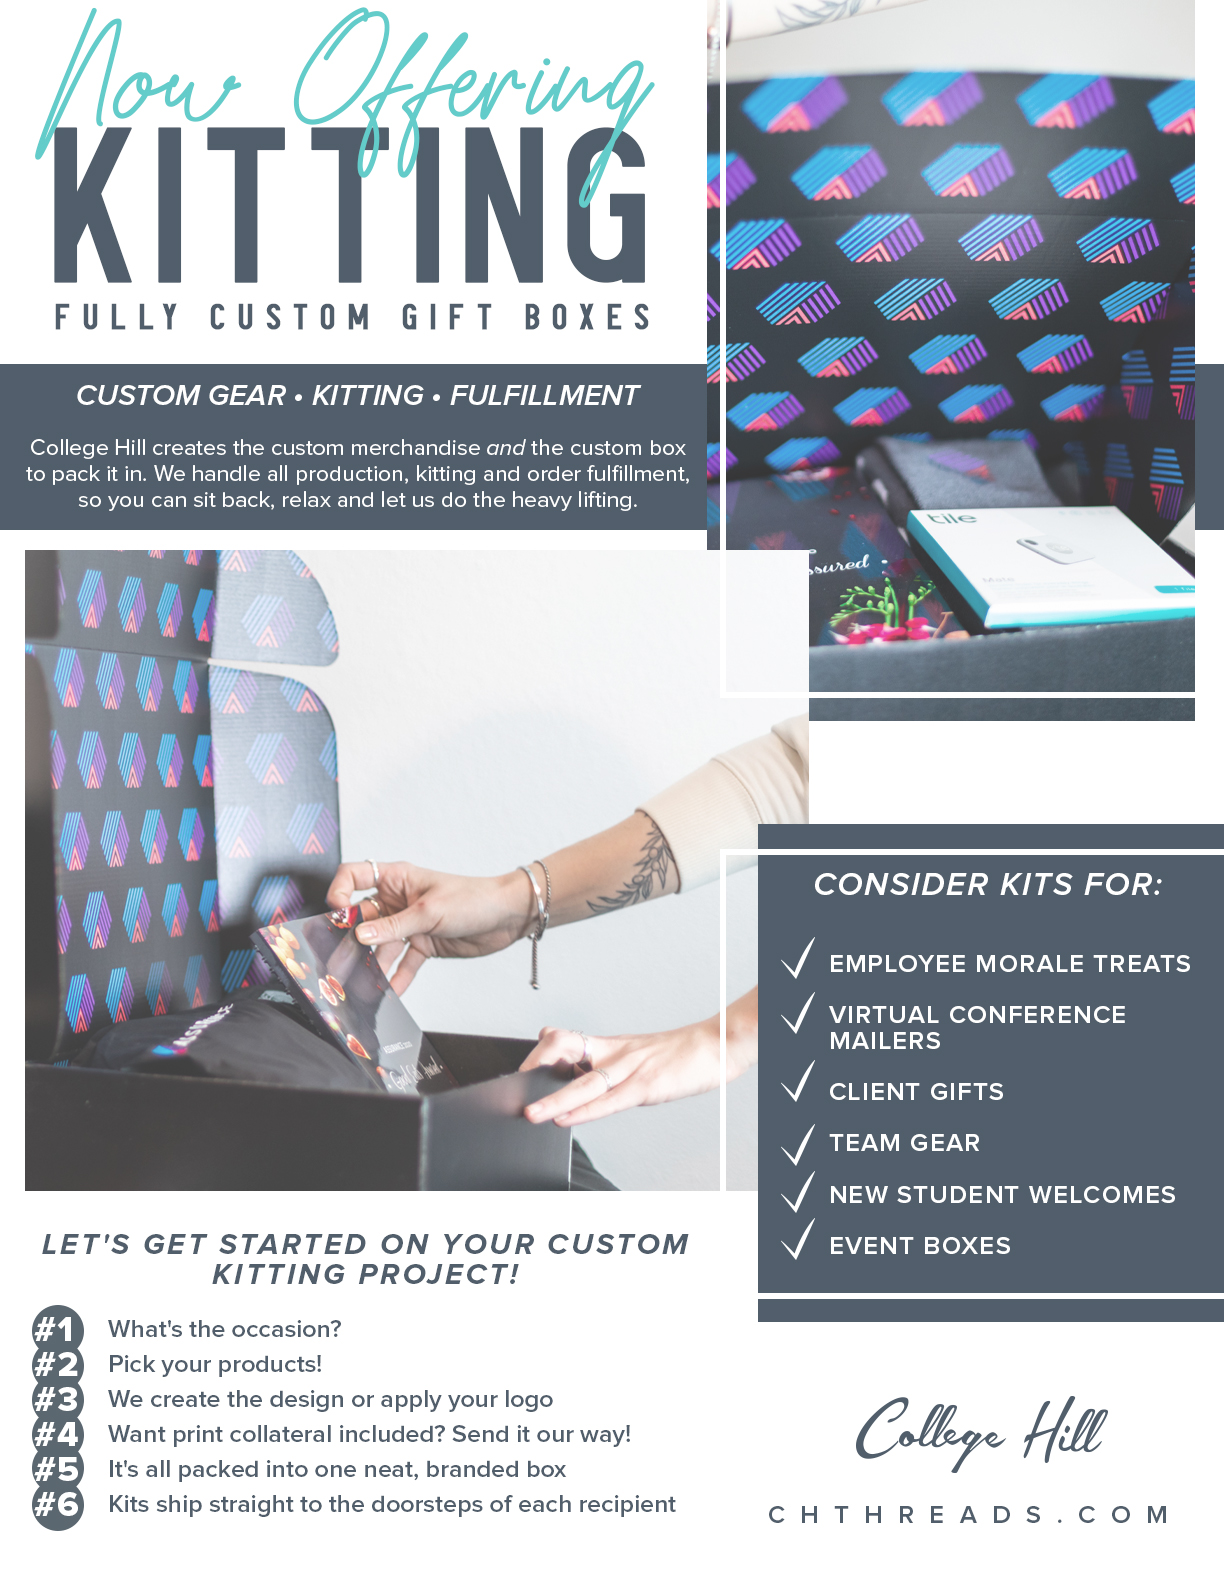 College Hill Kitting Service